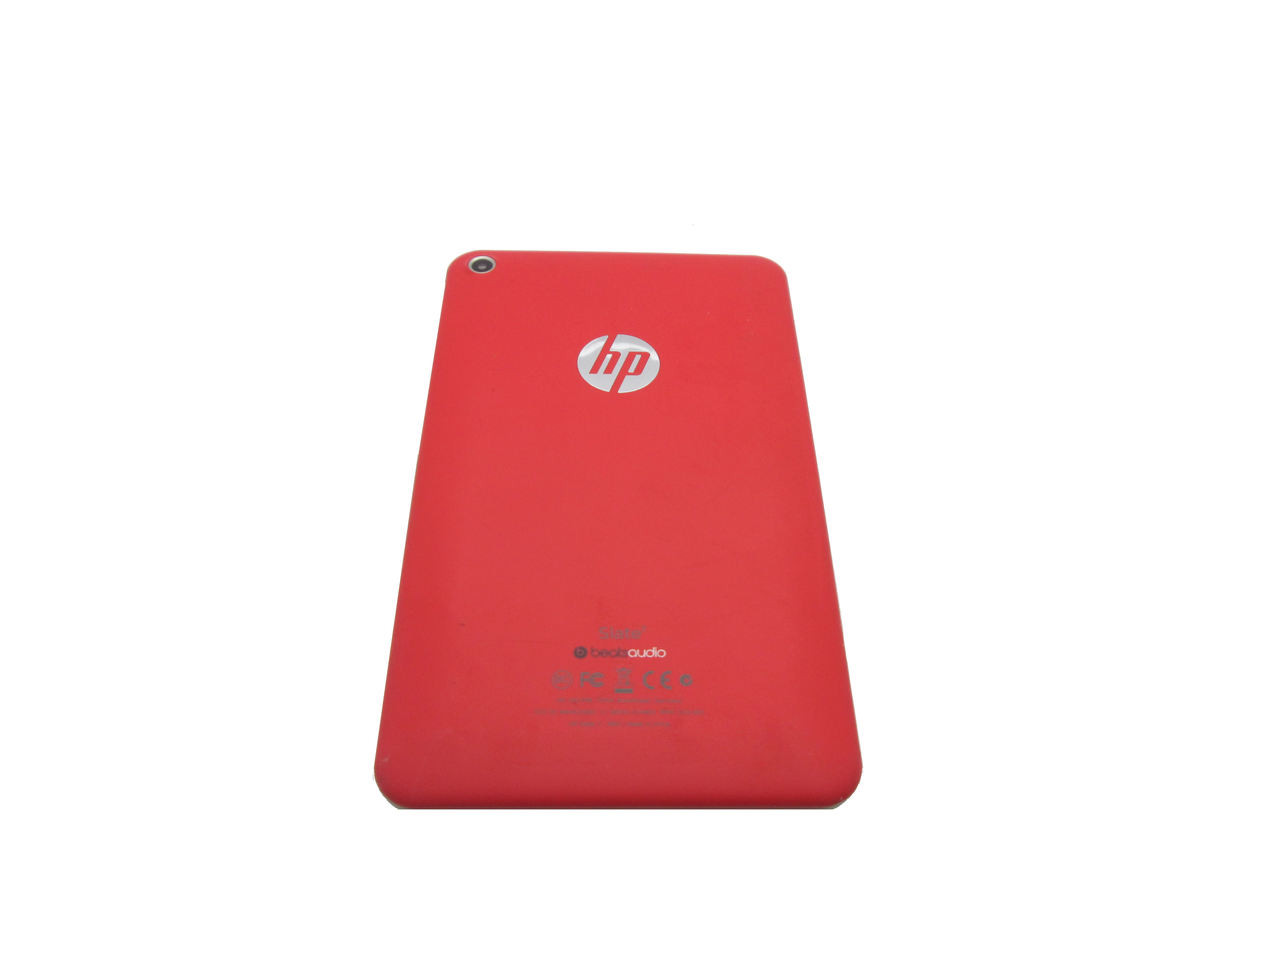 Marvelous Hp Slate 7 7 Tablet Back Case Cover Red 730930 001 Download Free Architecture Designs Rallybritishbridgeorg